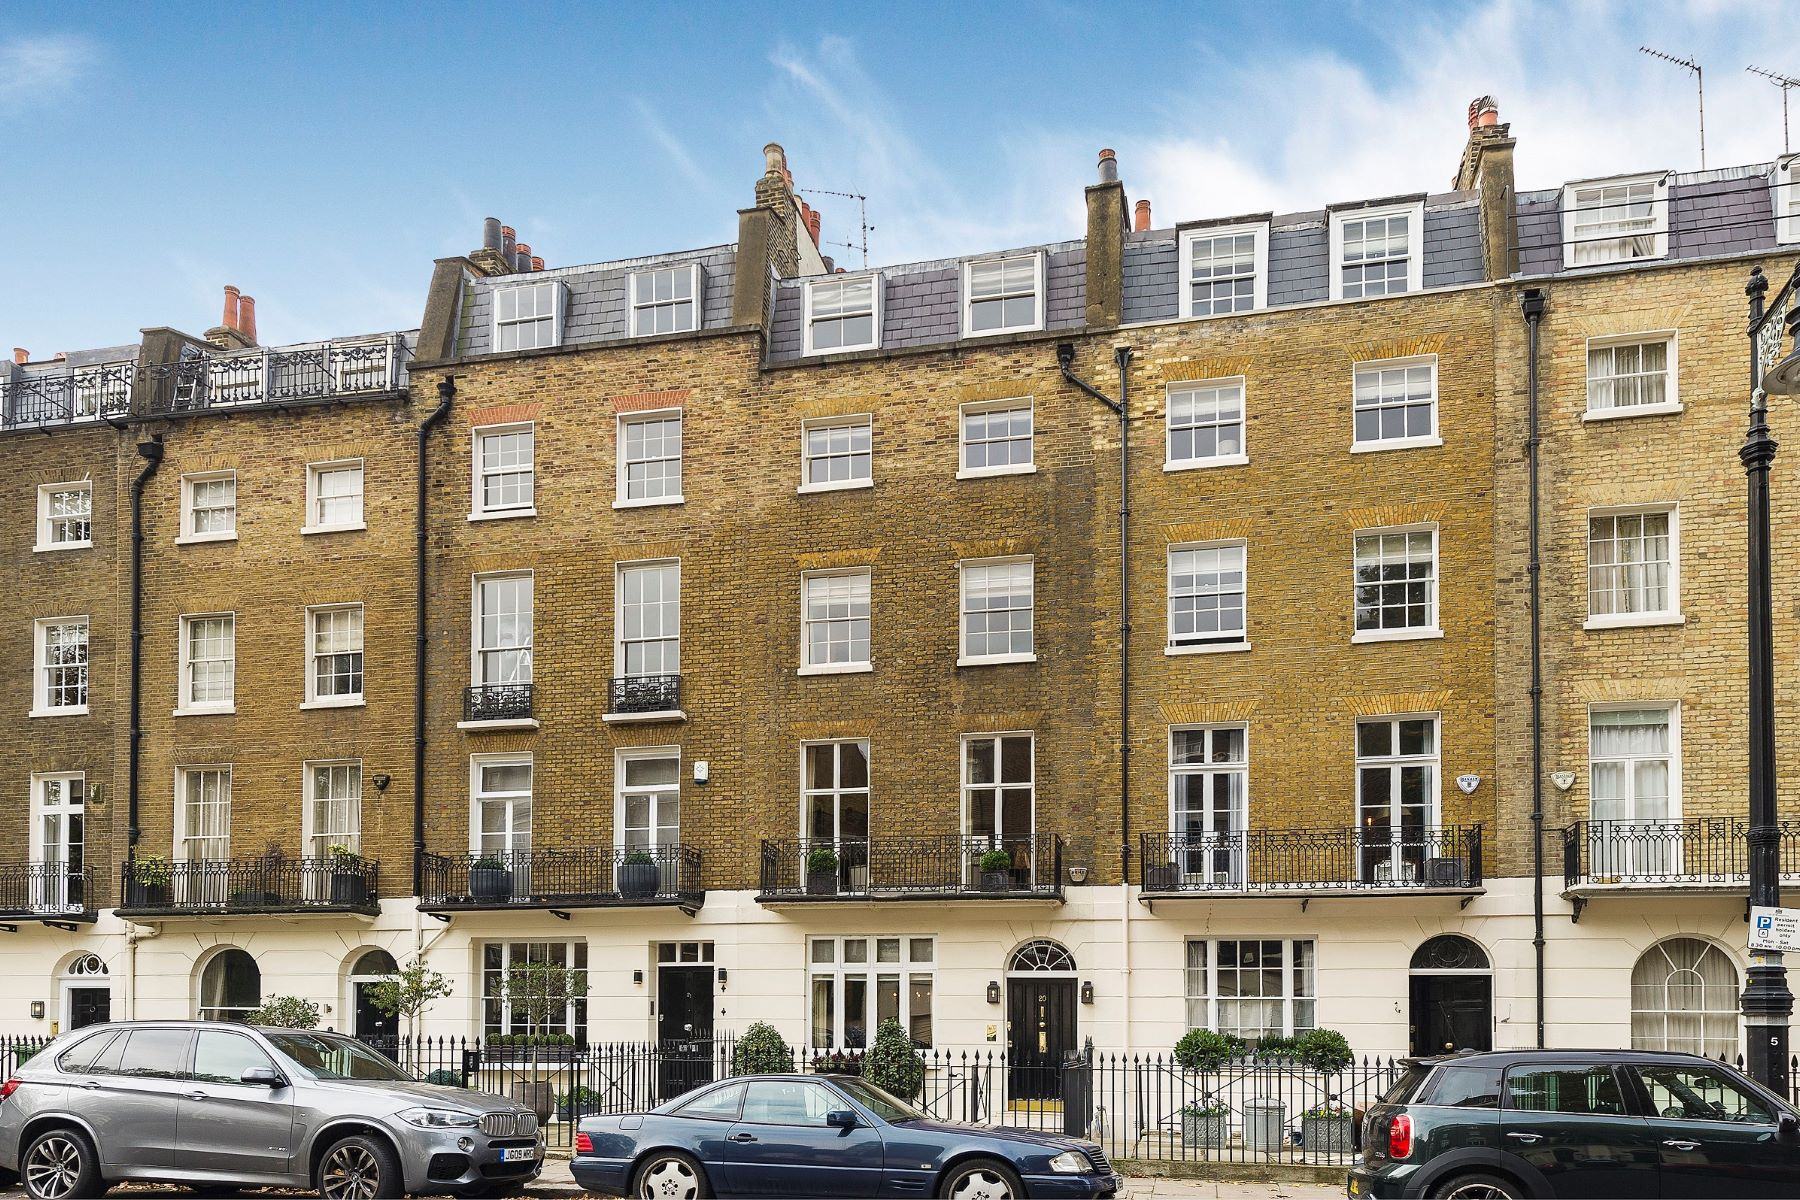 townhouses for Sale at 20 Wilton Place Knightsbridge London, England SW1X 8RL United Kingdom